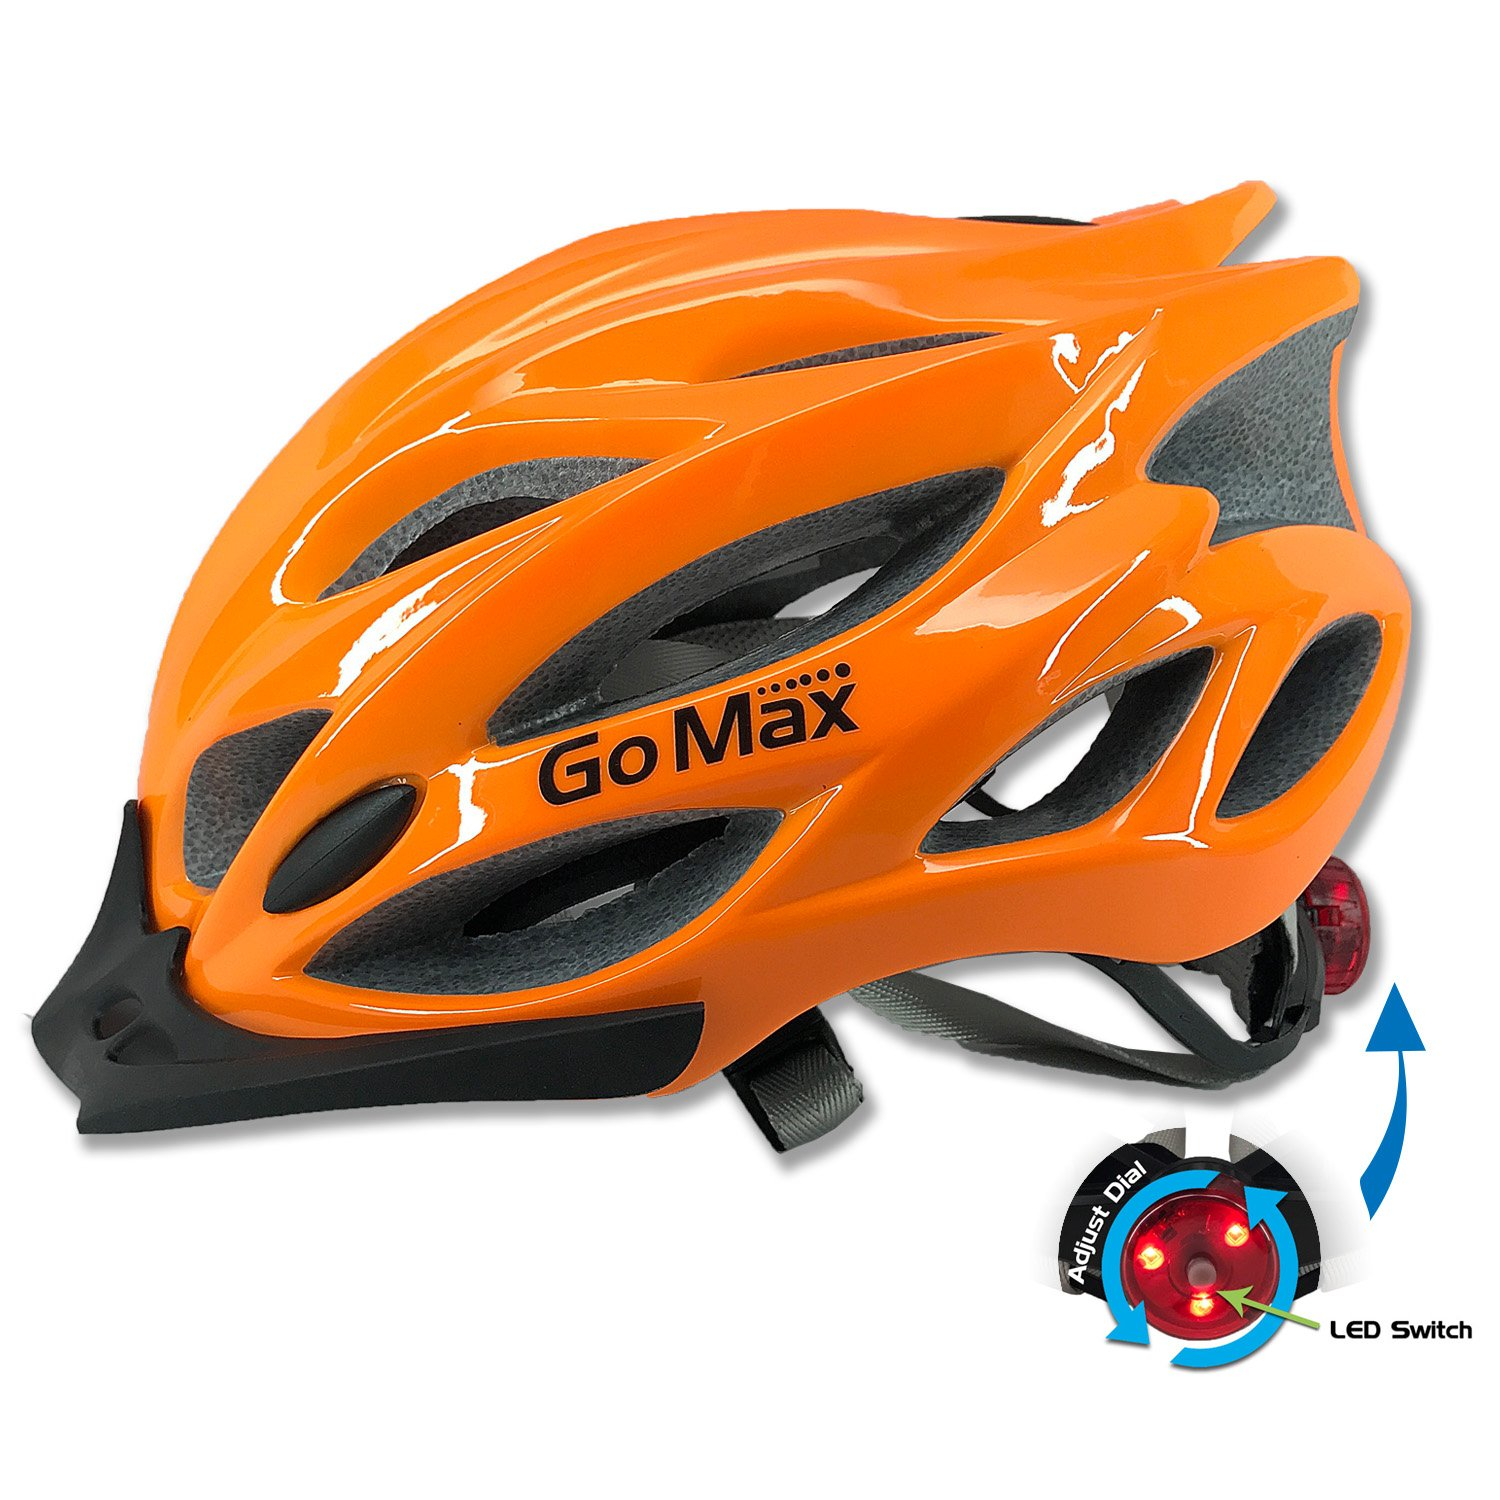 GoMax Aero Adult Safety Helmet Adjustable Road Cycling Mountain Bike Bicycle Helmet Ultralight Inner Padding Chin Protector and Visor w/Rear LED Tail Light Adjust product image